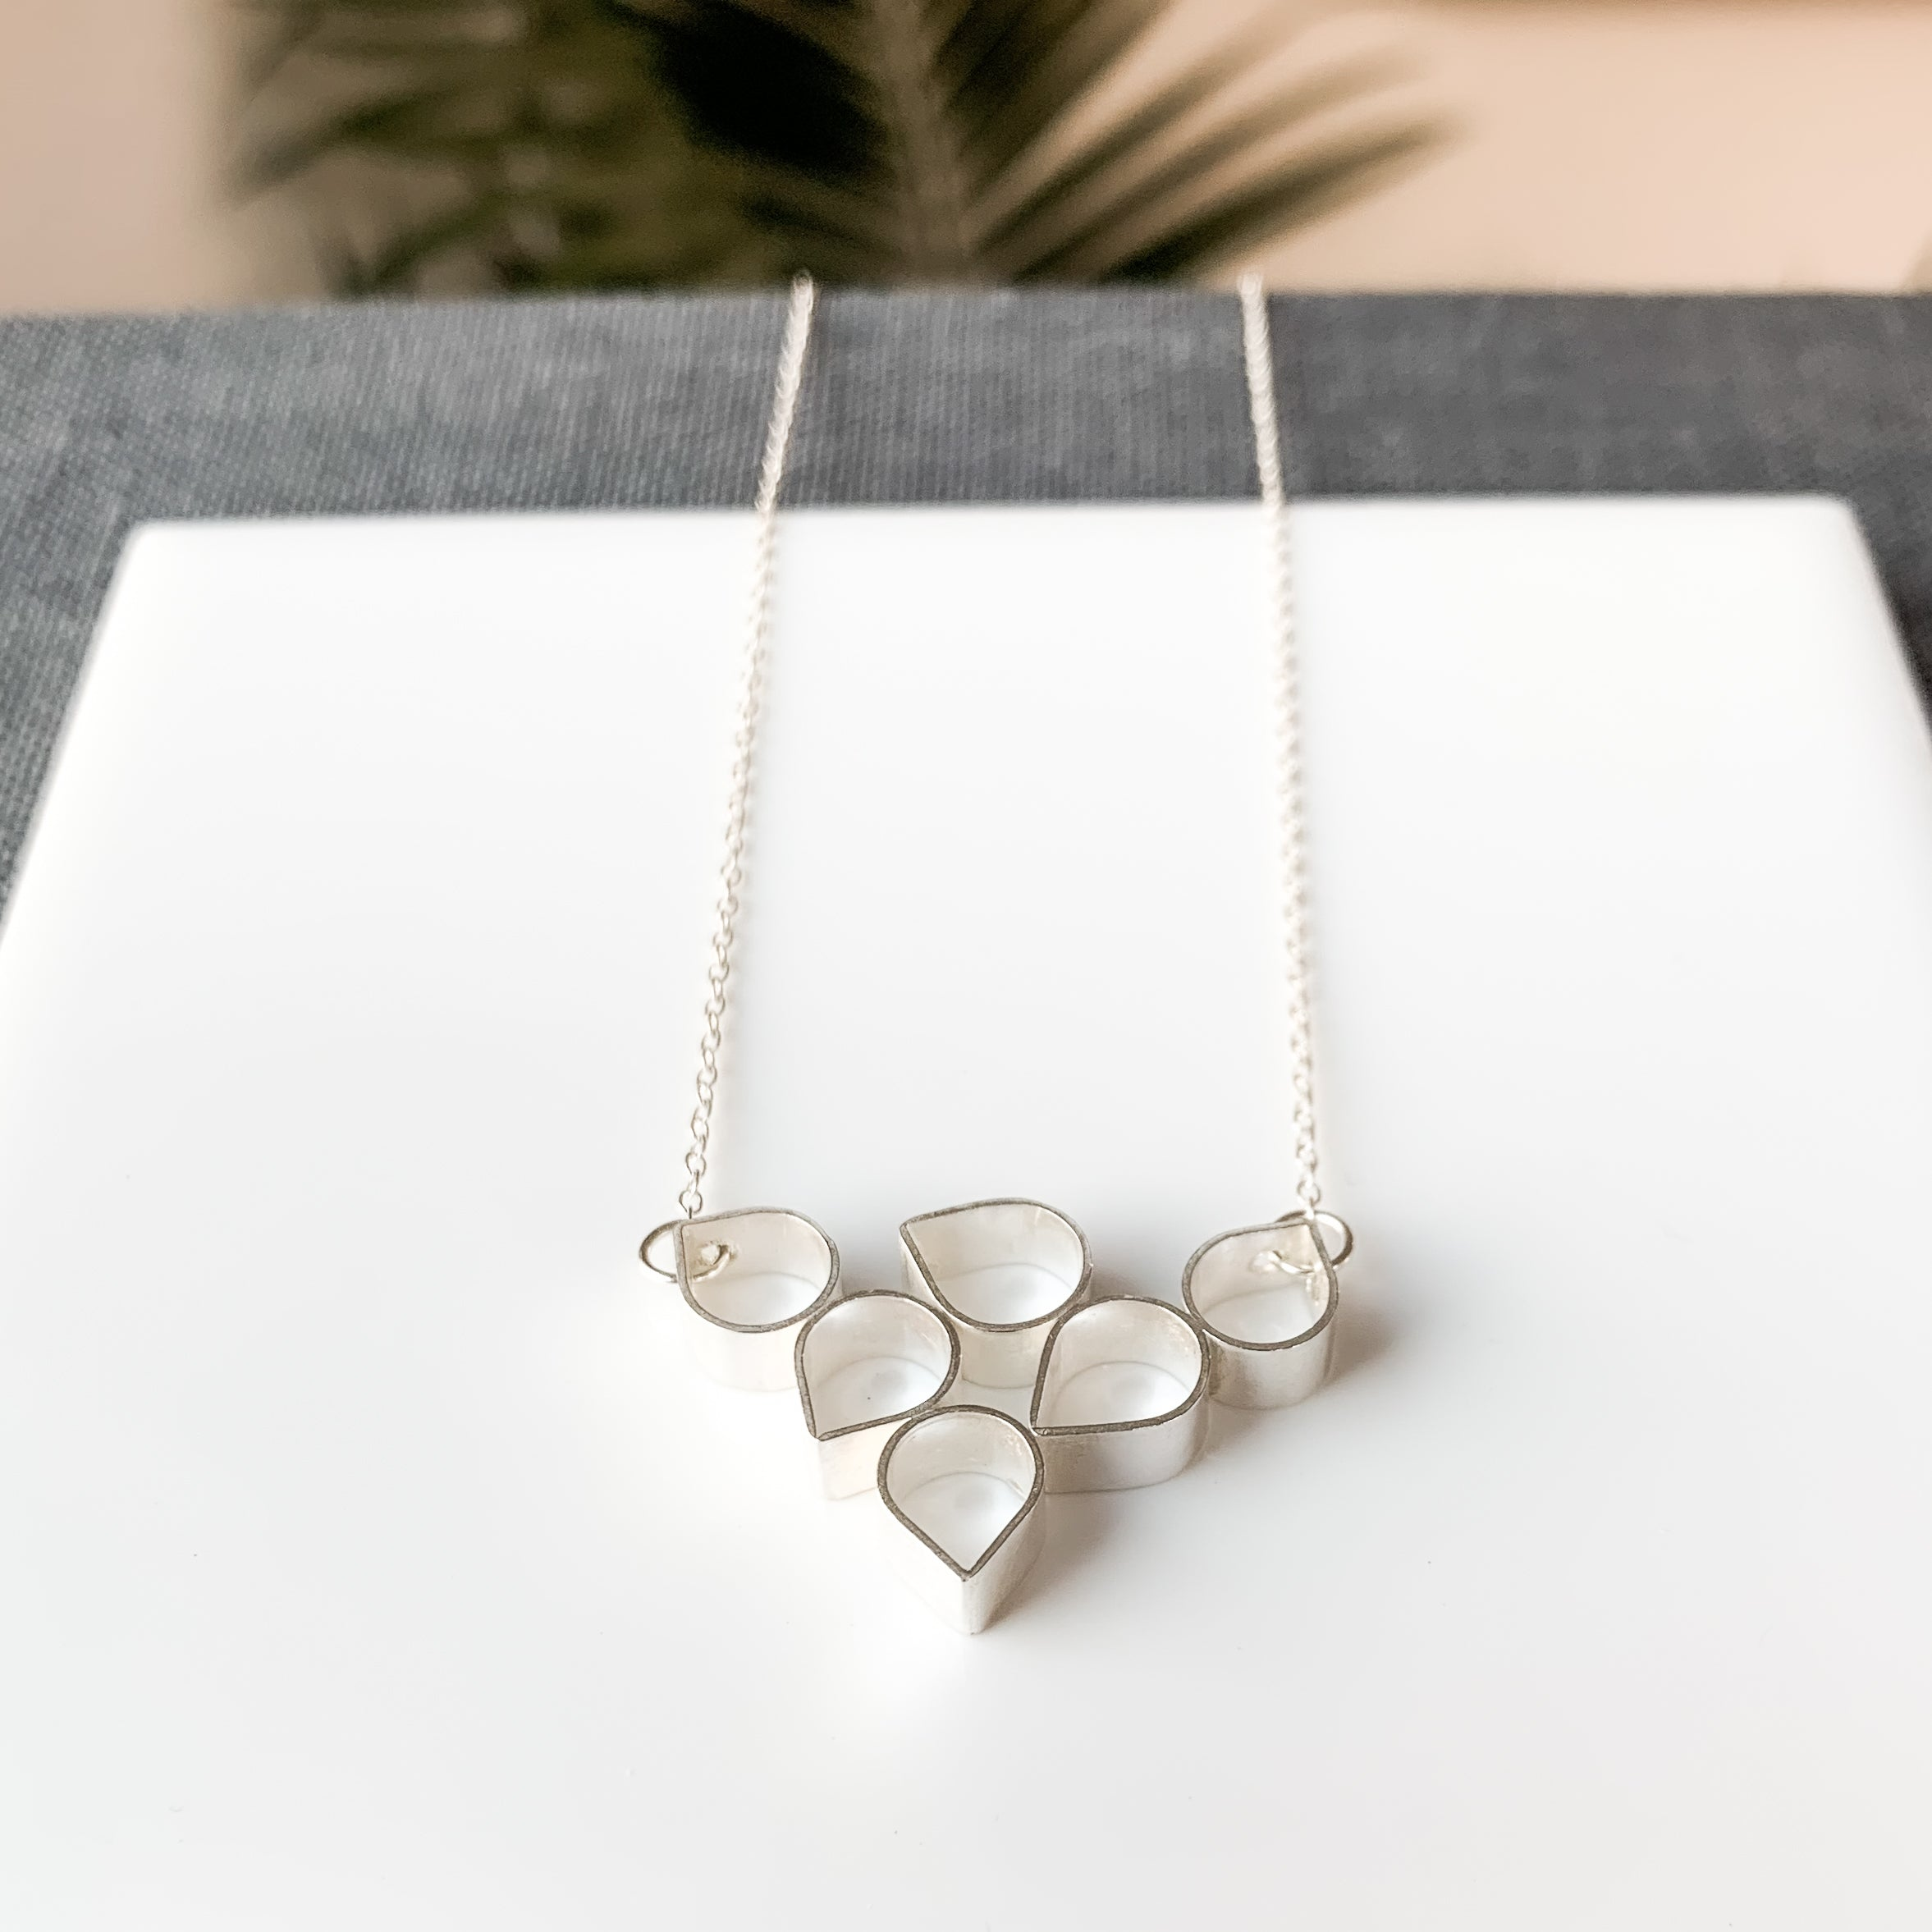 MINIMA - GOTA V - necklace (more options available)